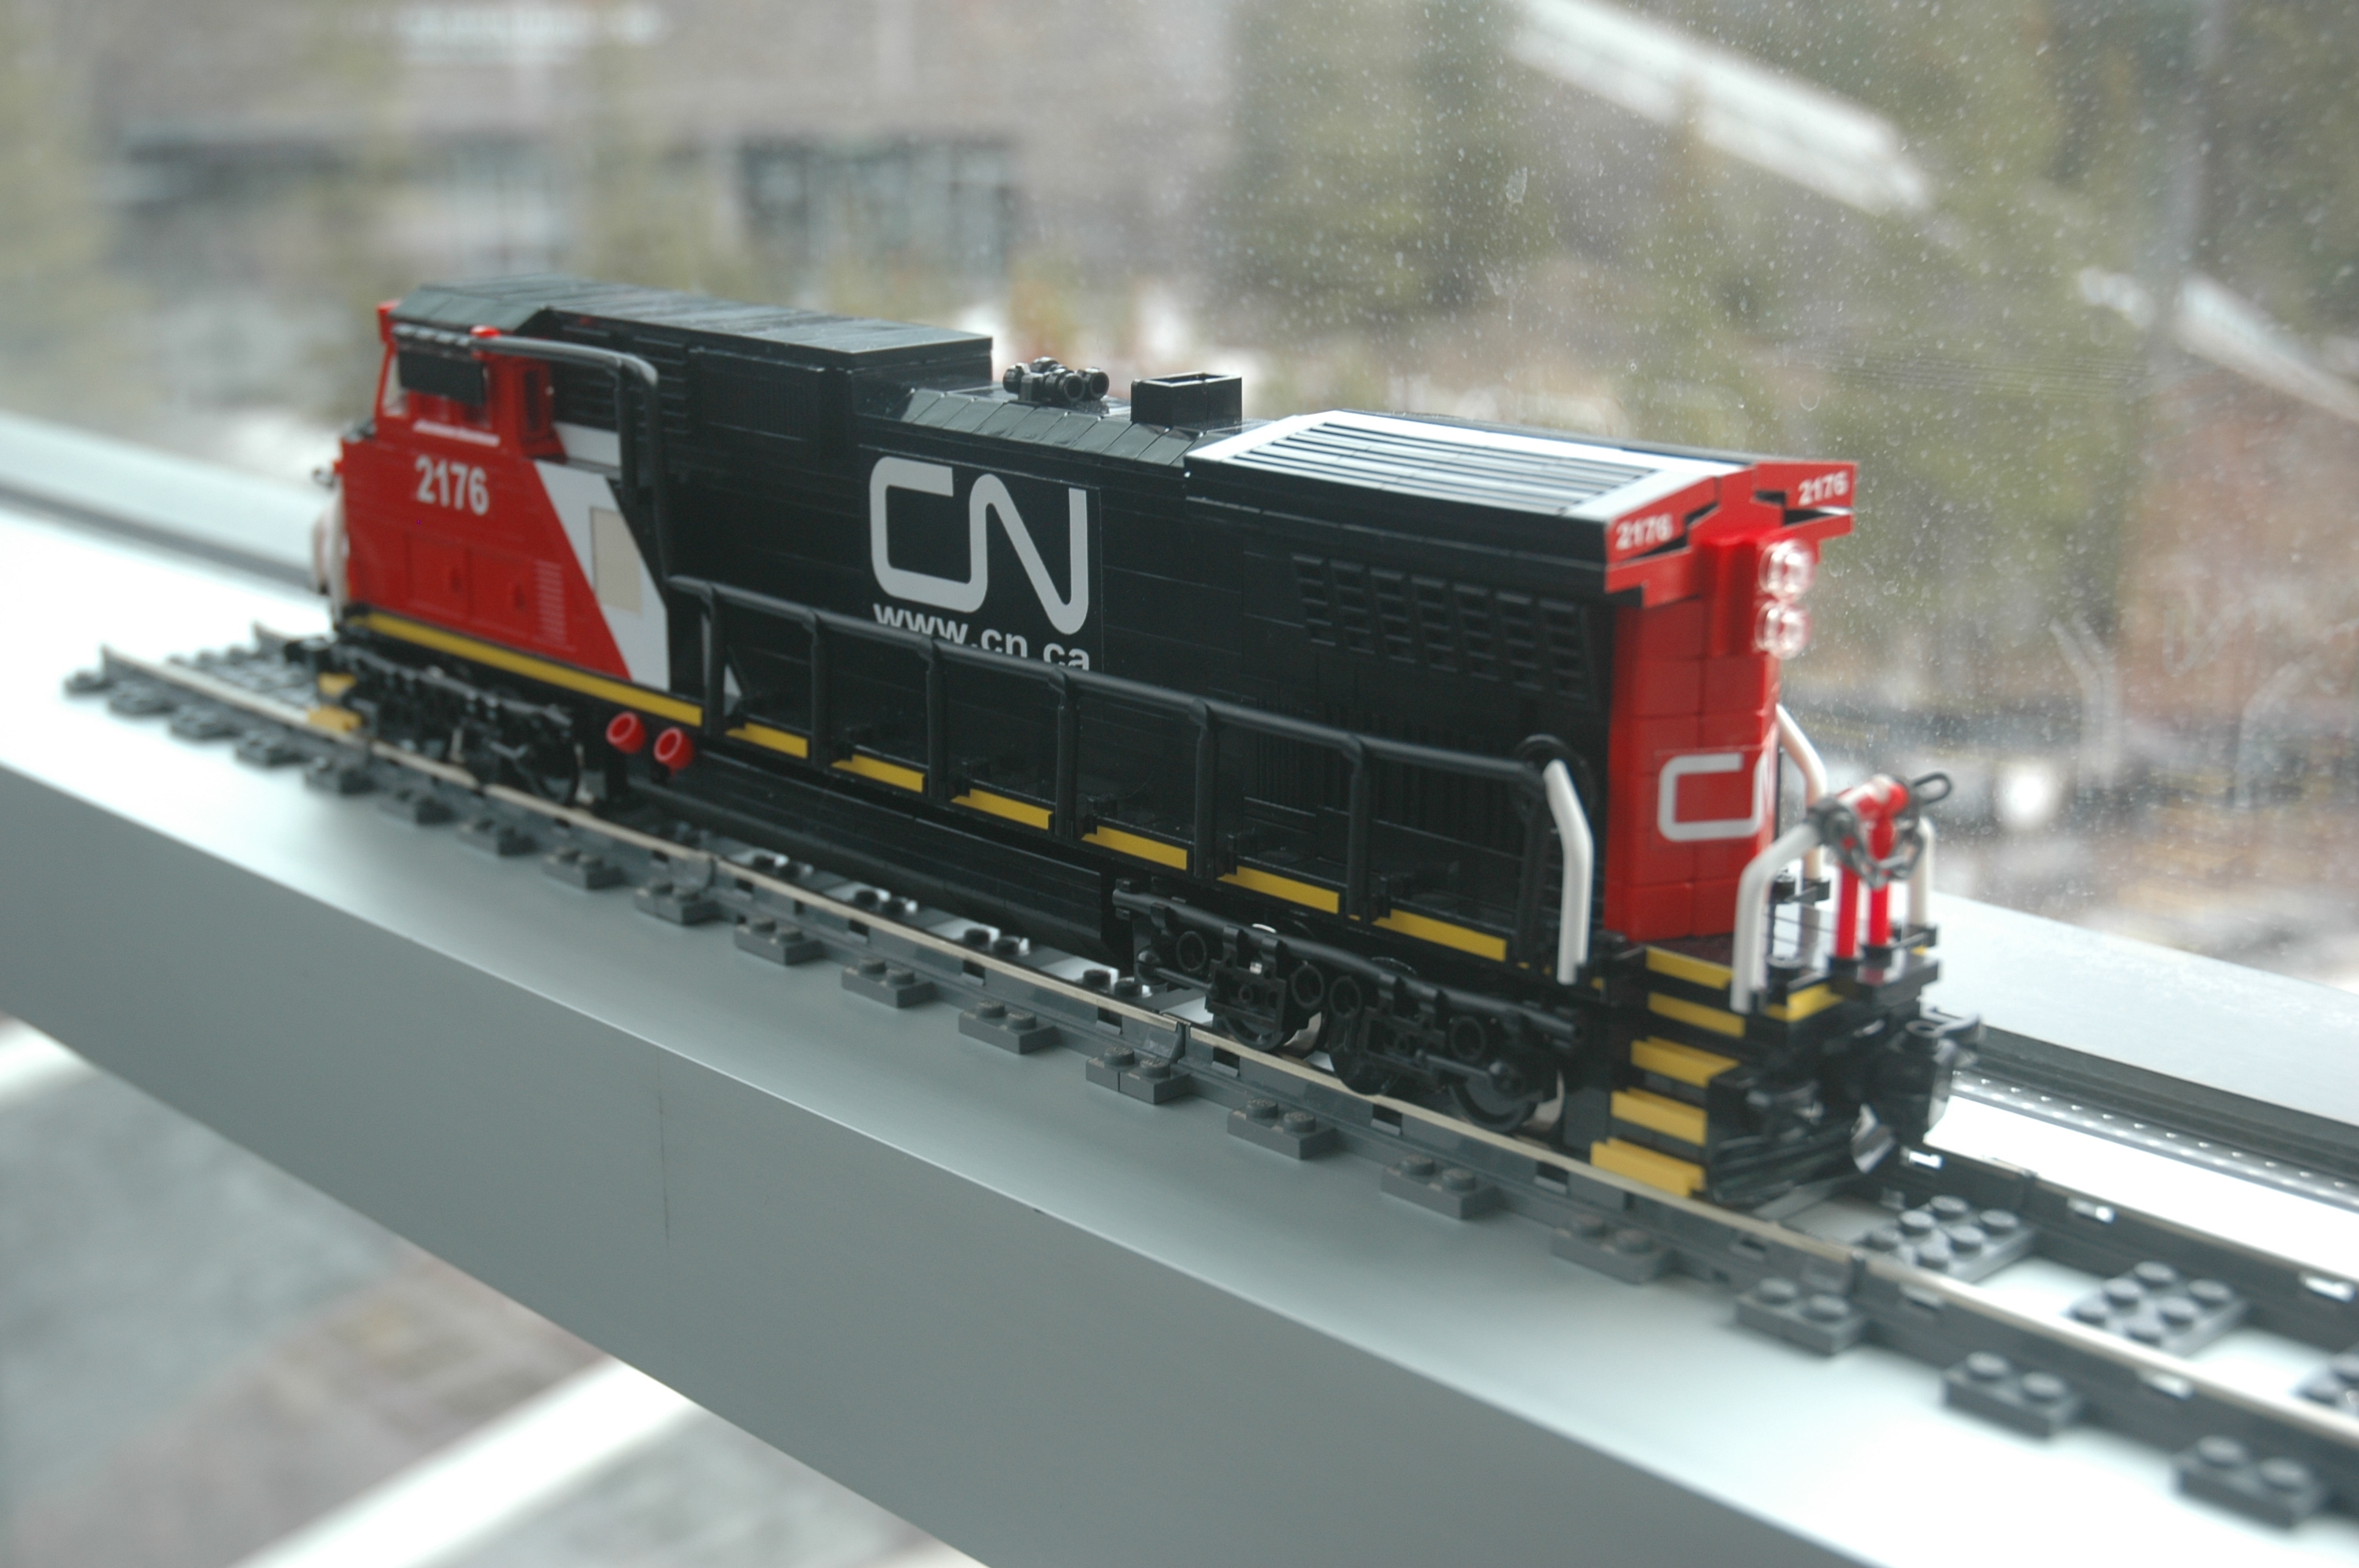 lego_cn_freight_engine_c40-8w_dash_8_rear3.jpg